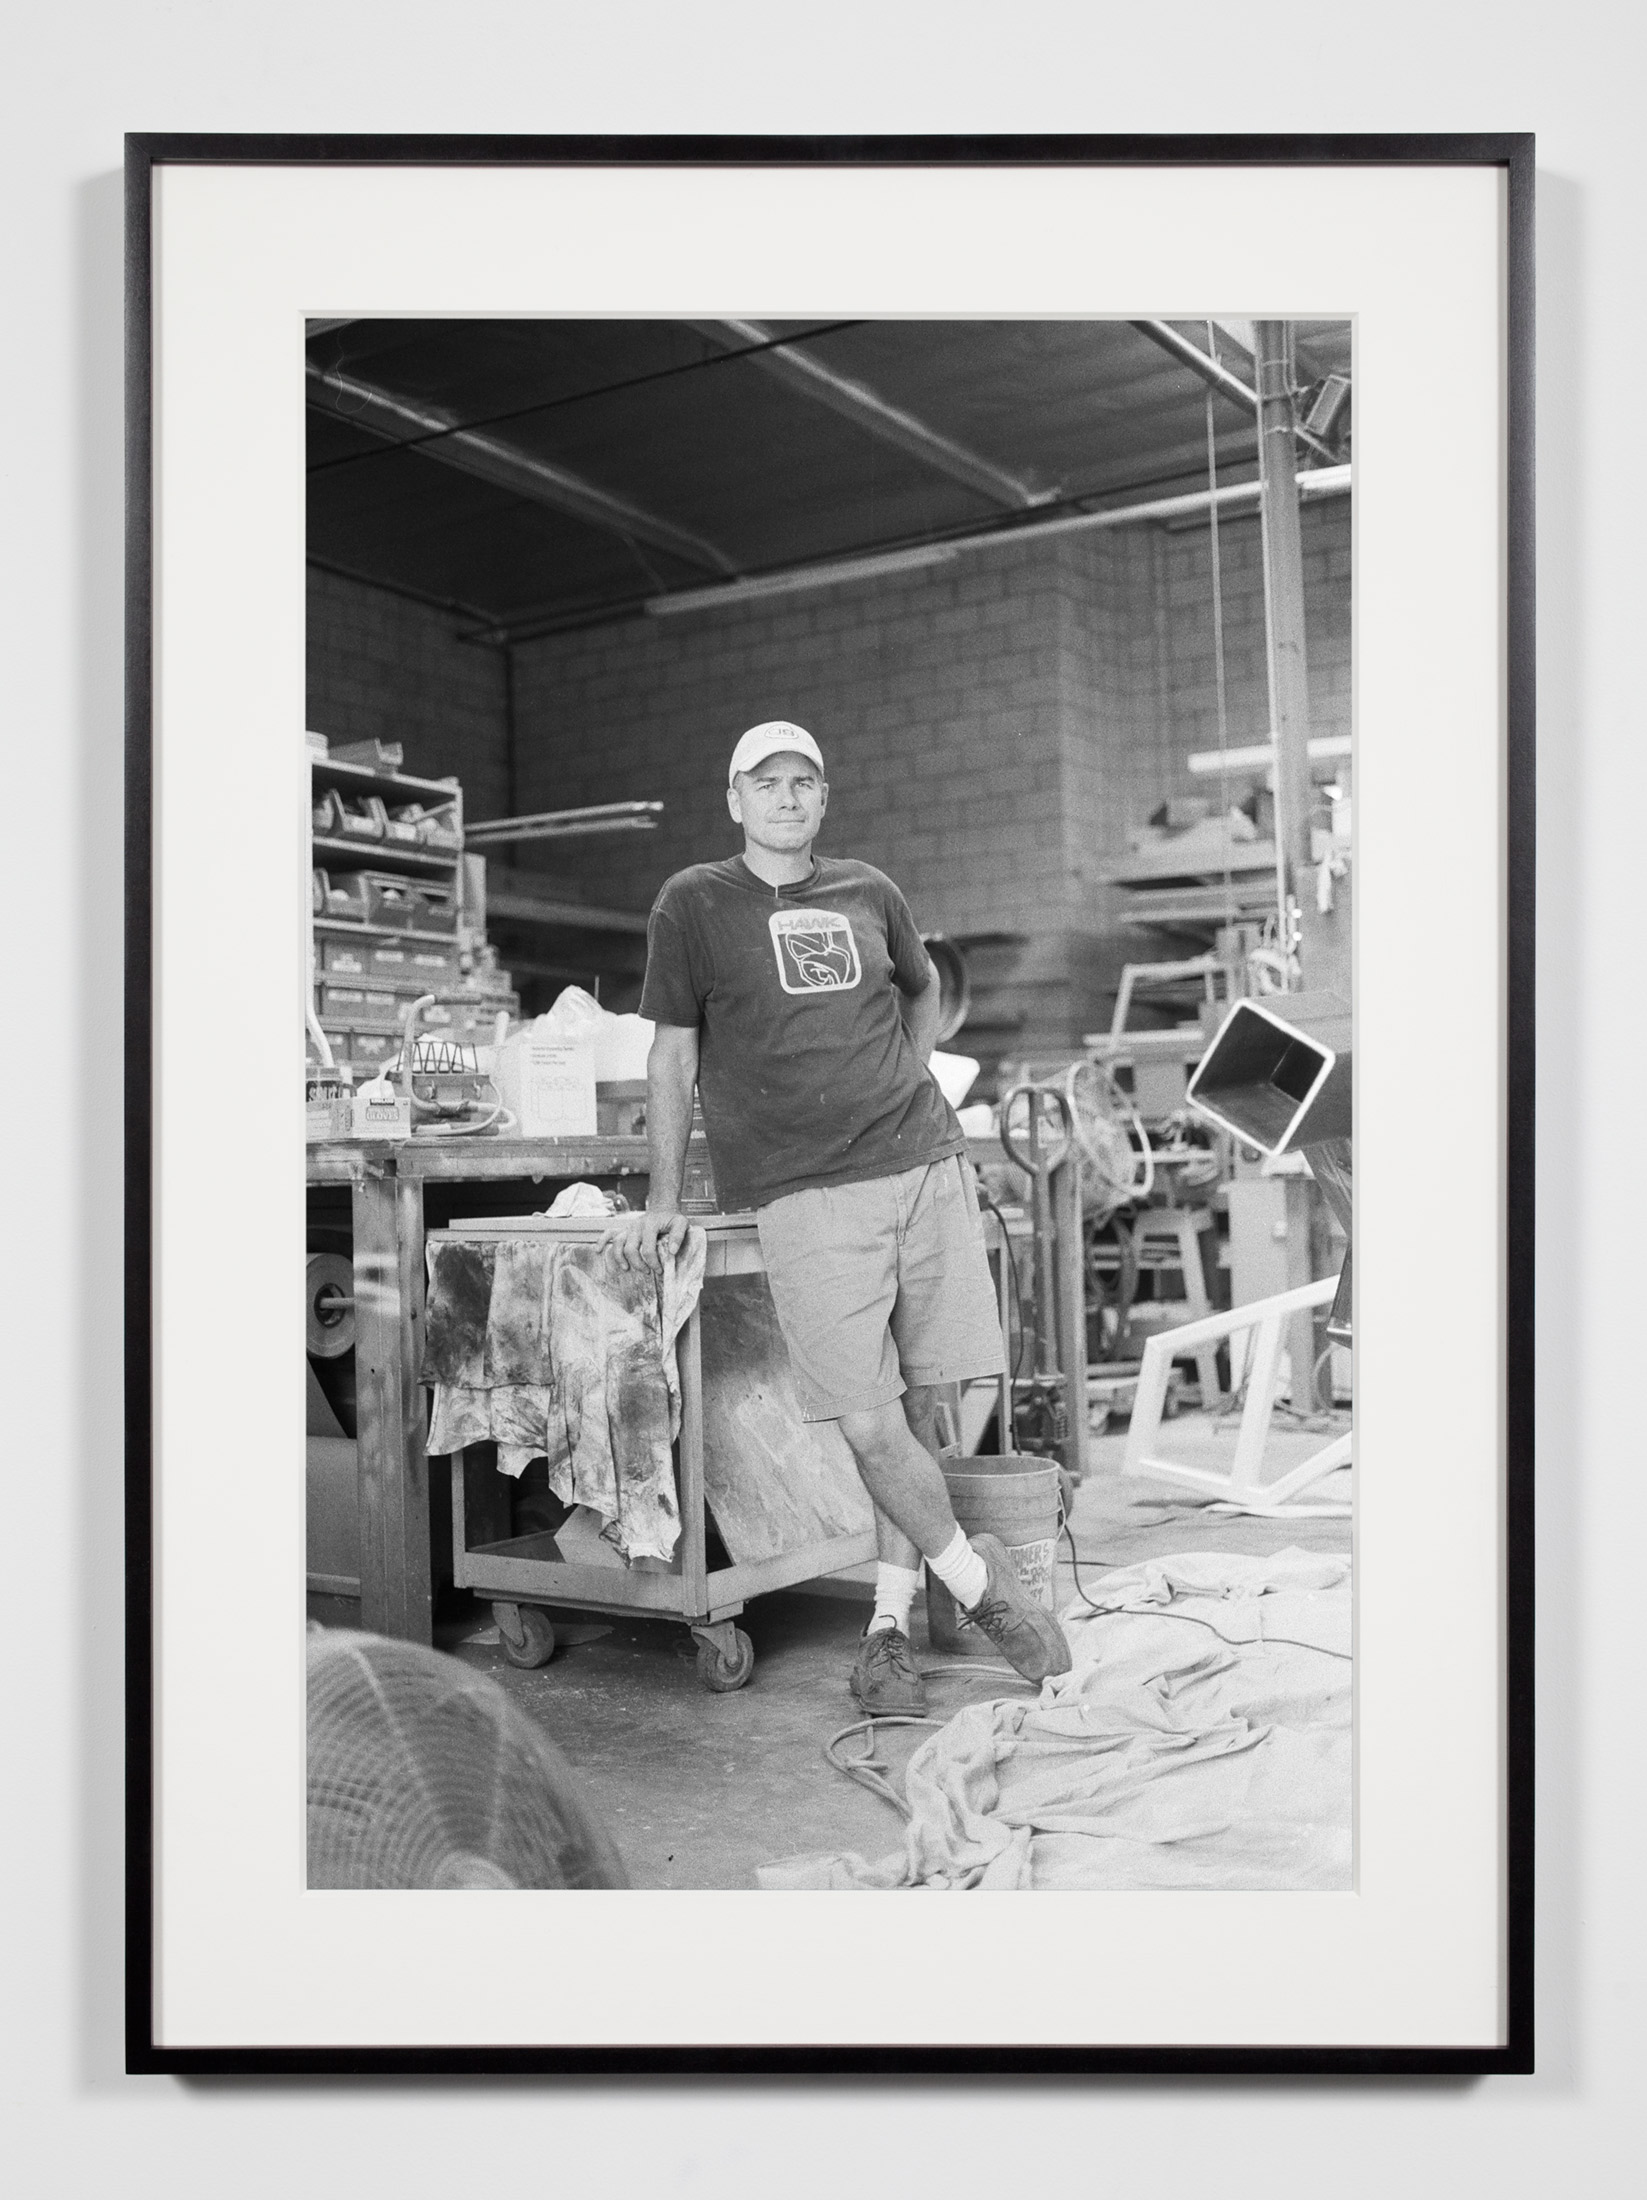 Fabricator, Glendale, California, July 9, 2008    2011   Epson Ultrachrome K3 archival ink jet print on Hahnemühle Photo Rag paper  36 3/8 x 26 3/8 inches   Industrial Portraits, 2008–